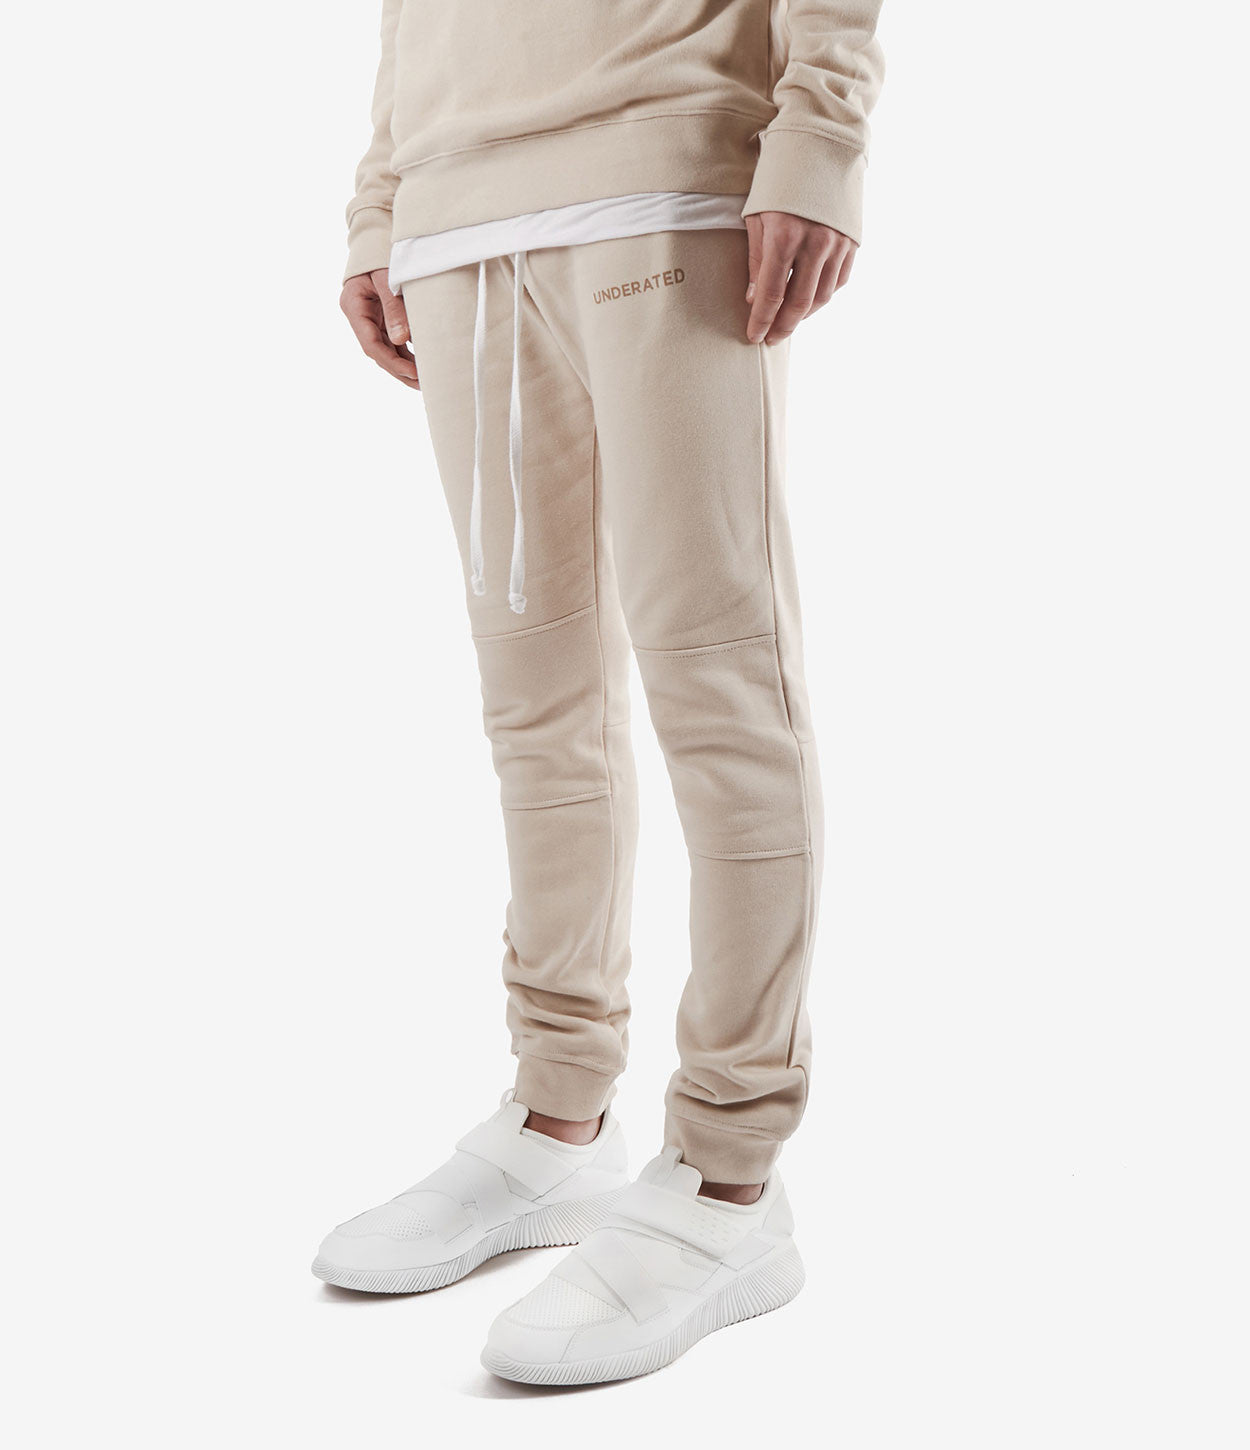 TR355 Essential Joggers - Sand - underated london - underatedco - 3